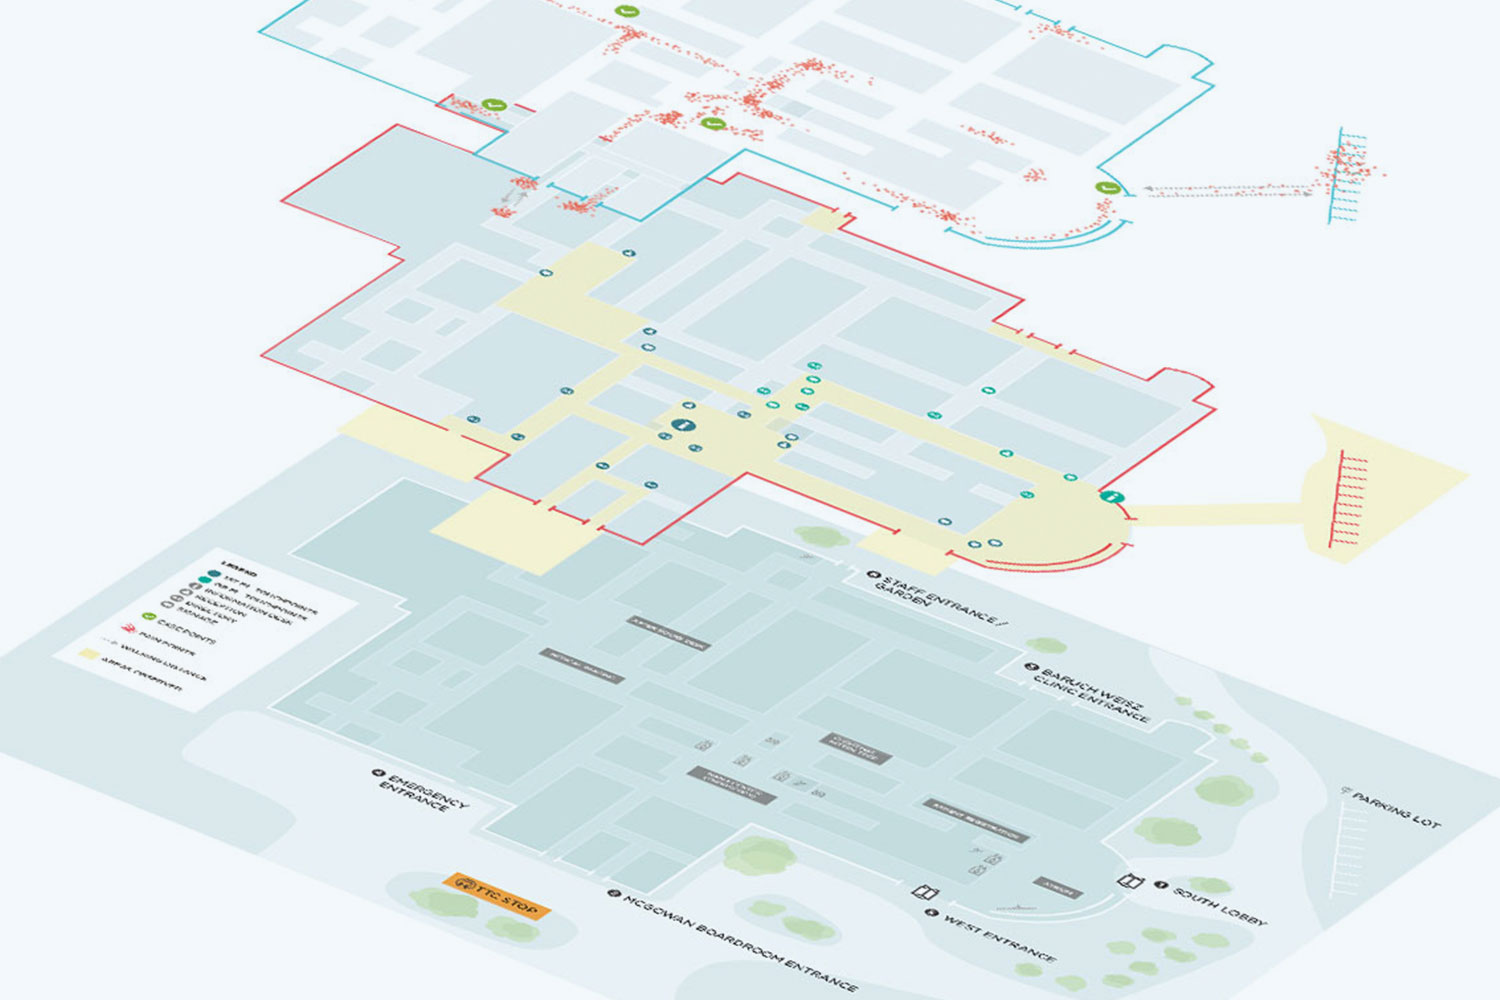 Rethinking patient navigation: A human-centered design approach to hospital wayfinding